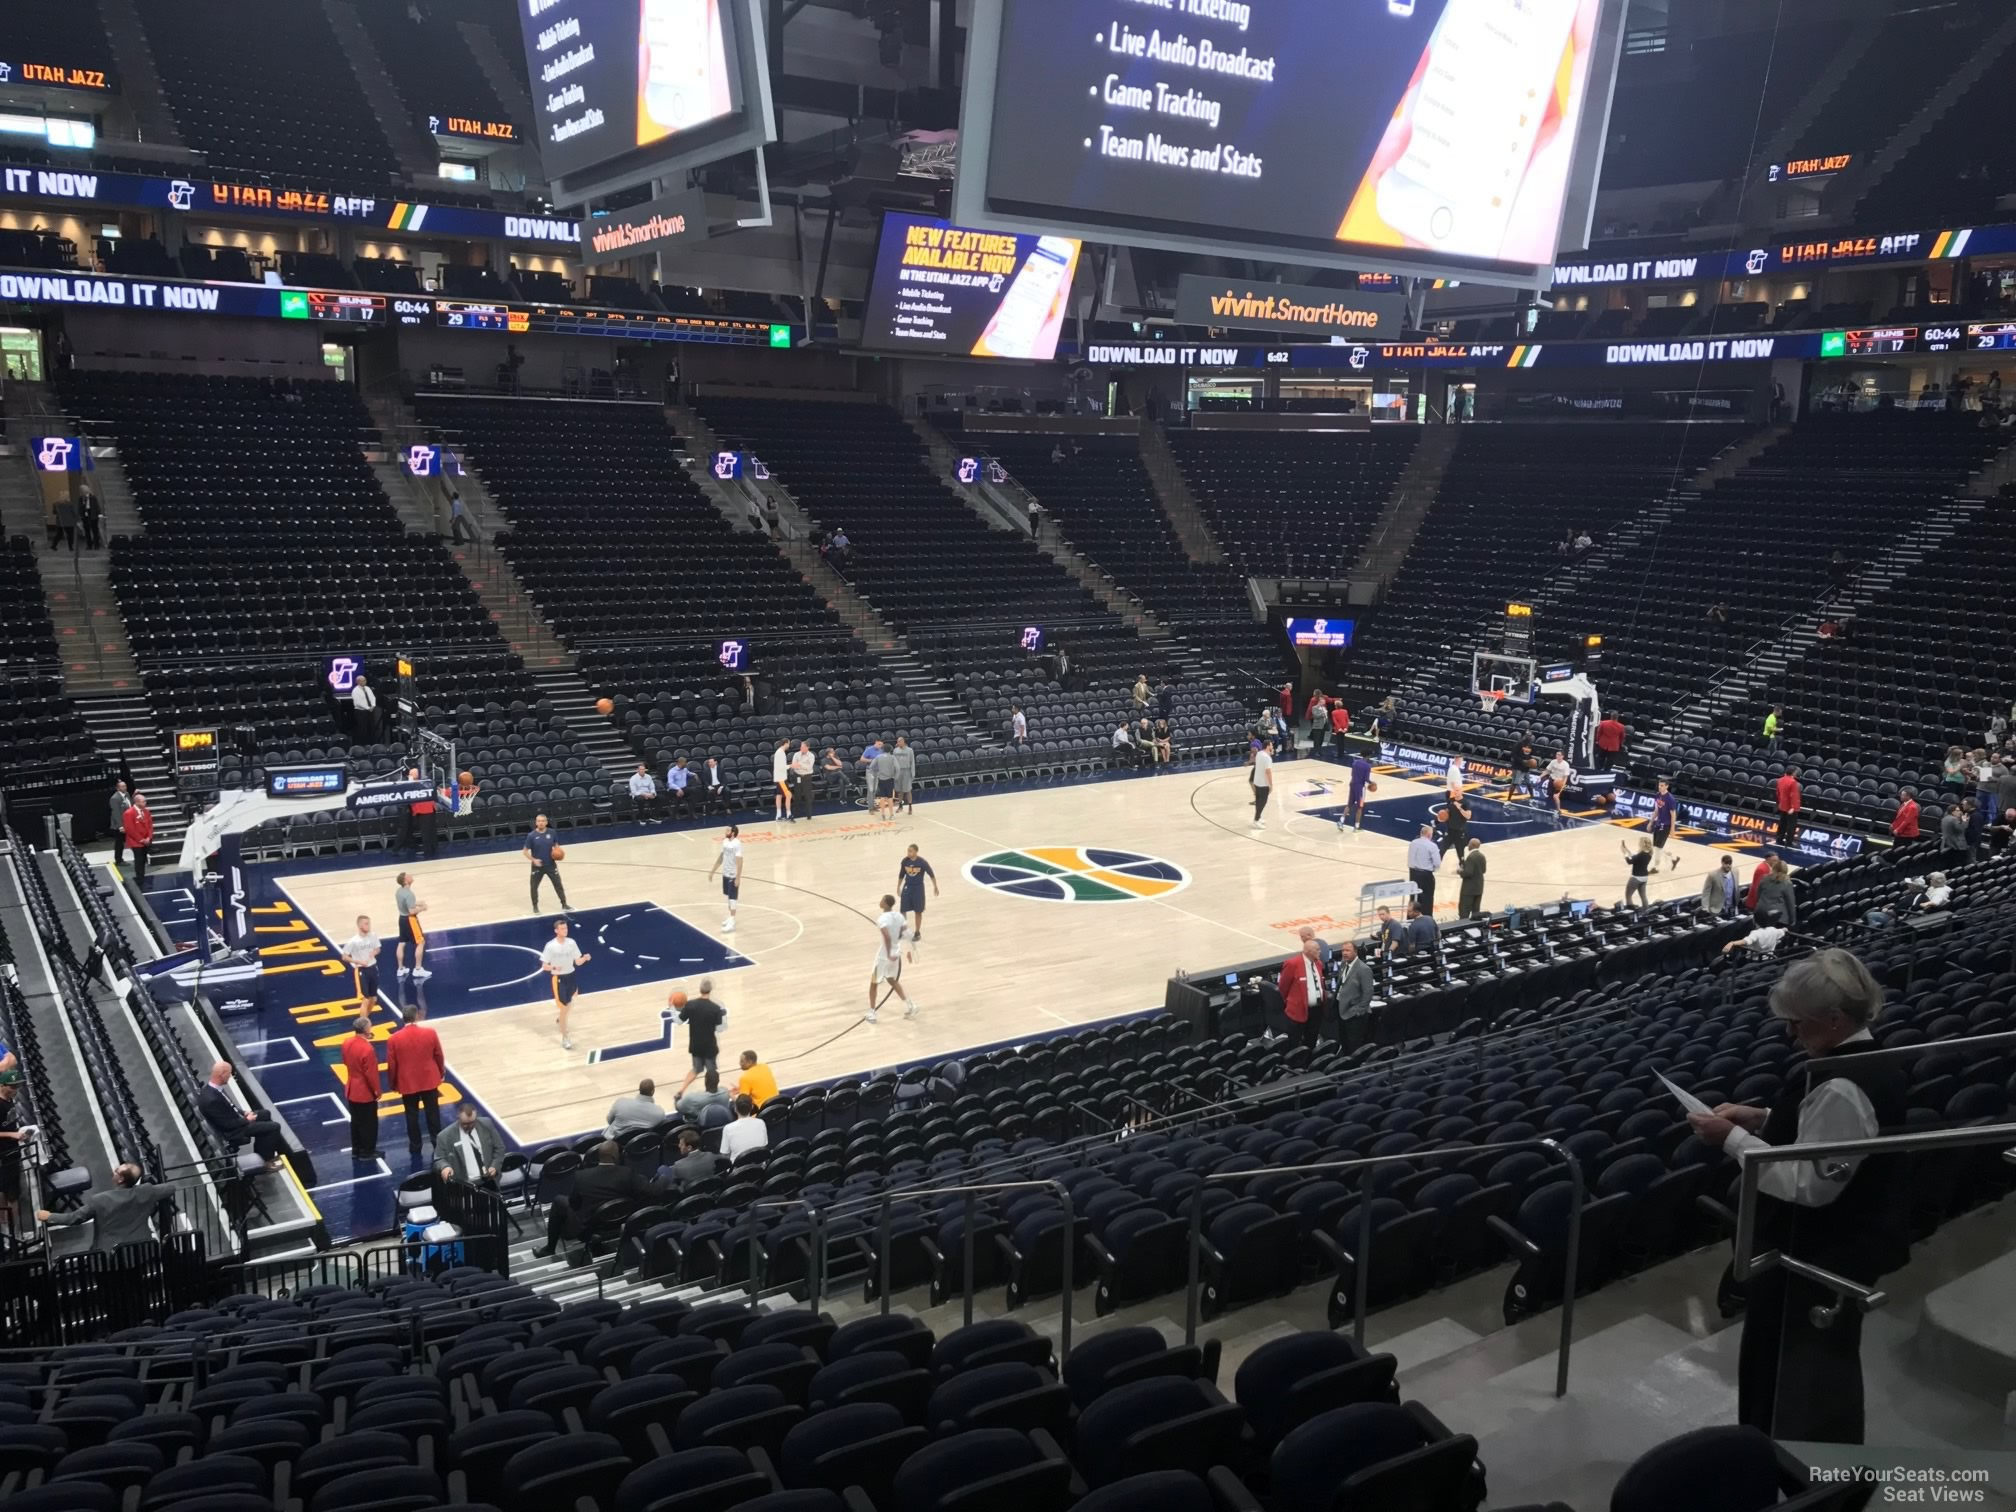 Section 9 seat view